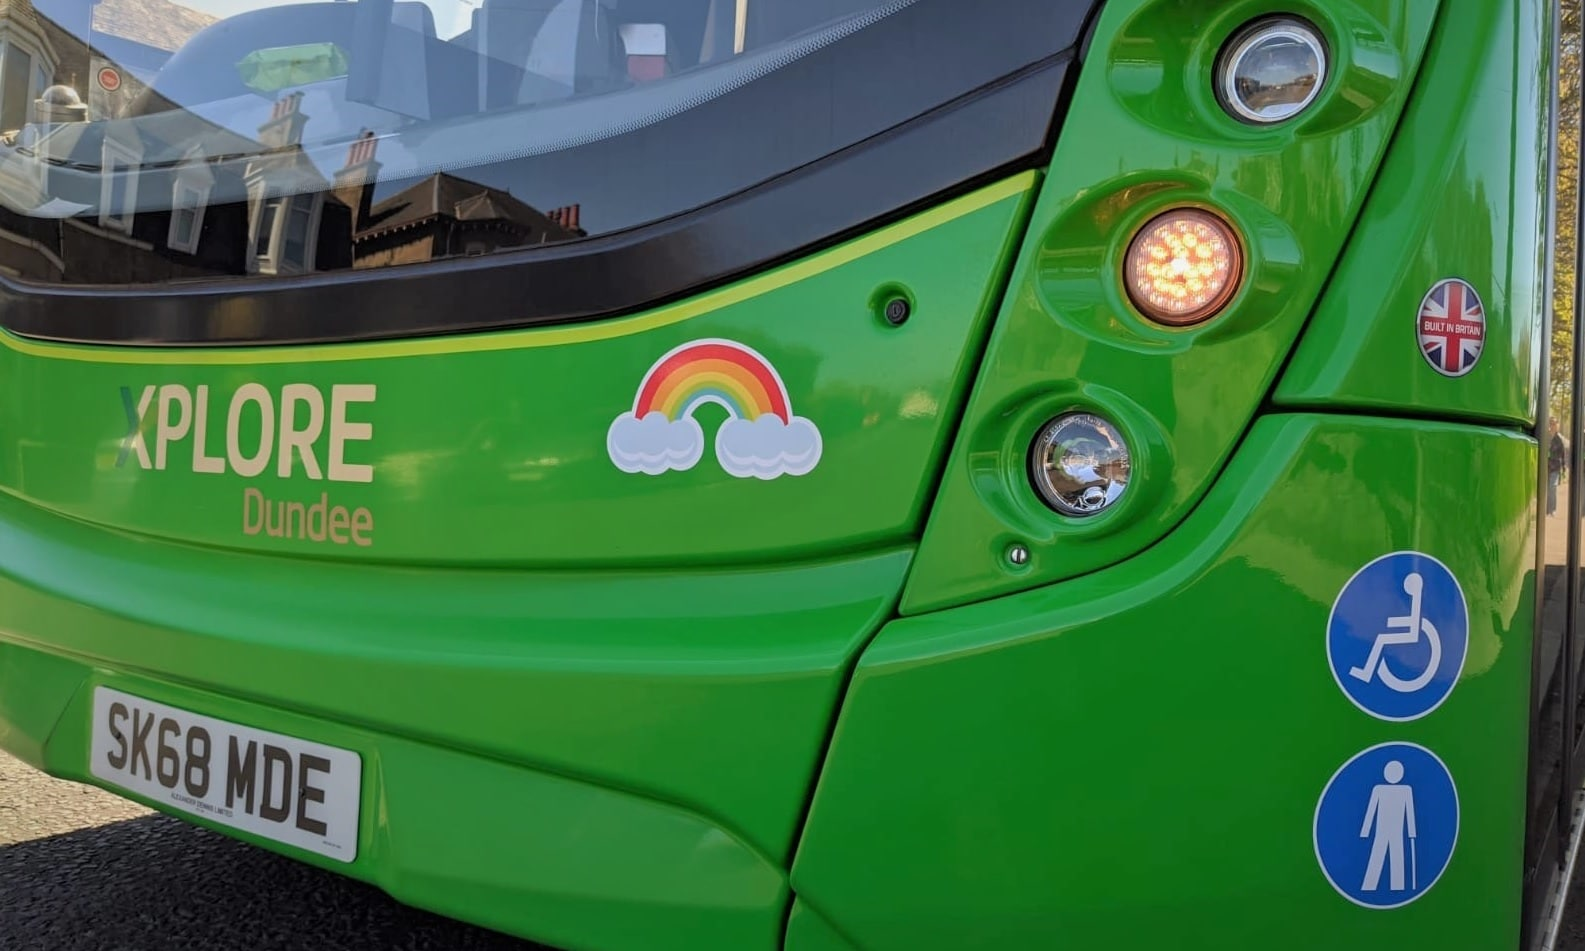 McGills Buses purchases Xplore Dundee